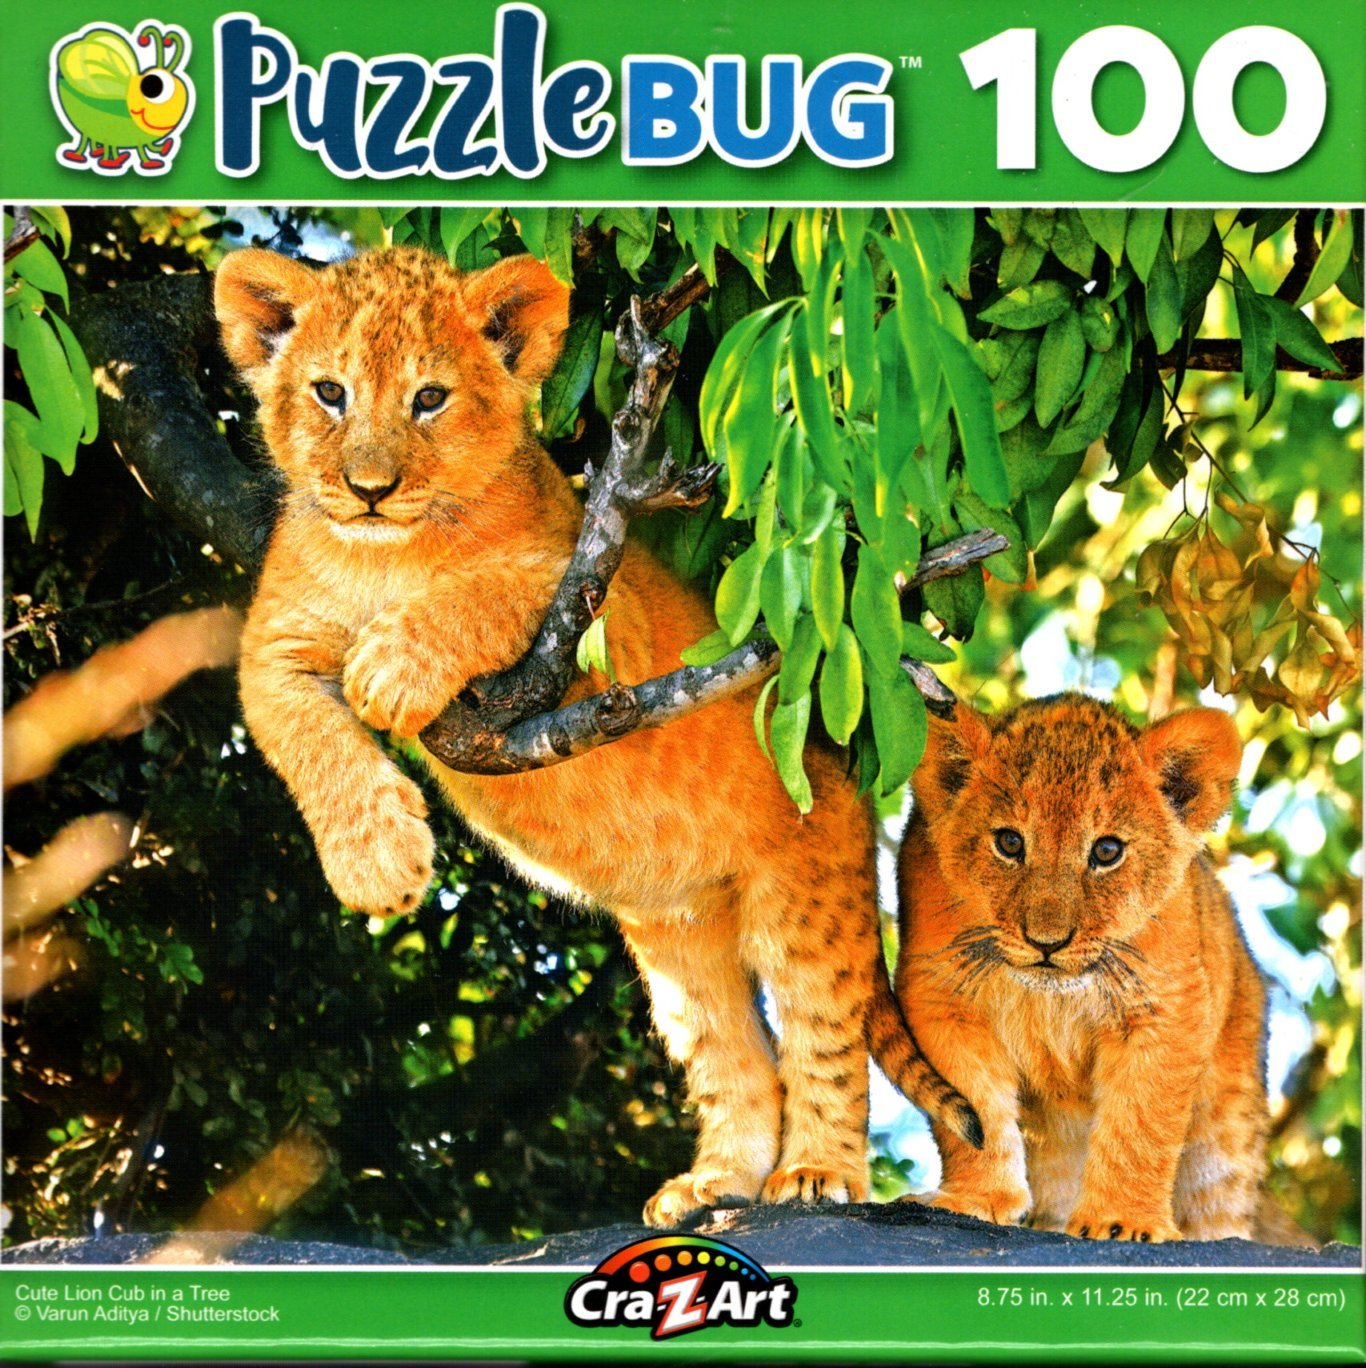 Puzzlebug Cute Lion Cub in a Tree 100 Piece Jigsaw Puzzle